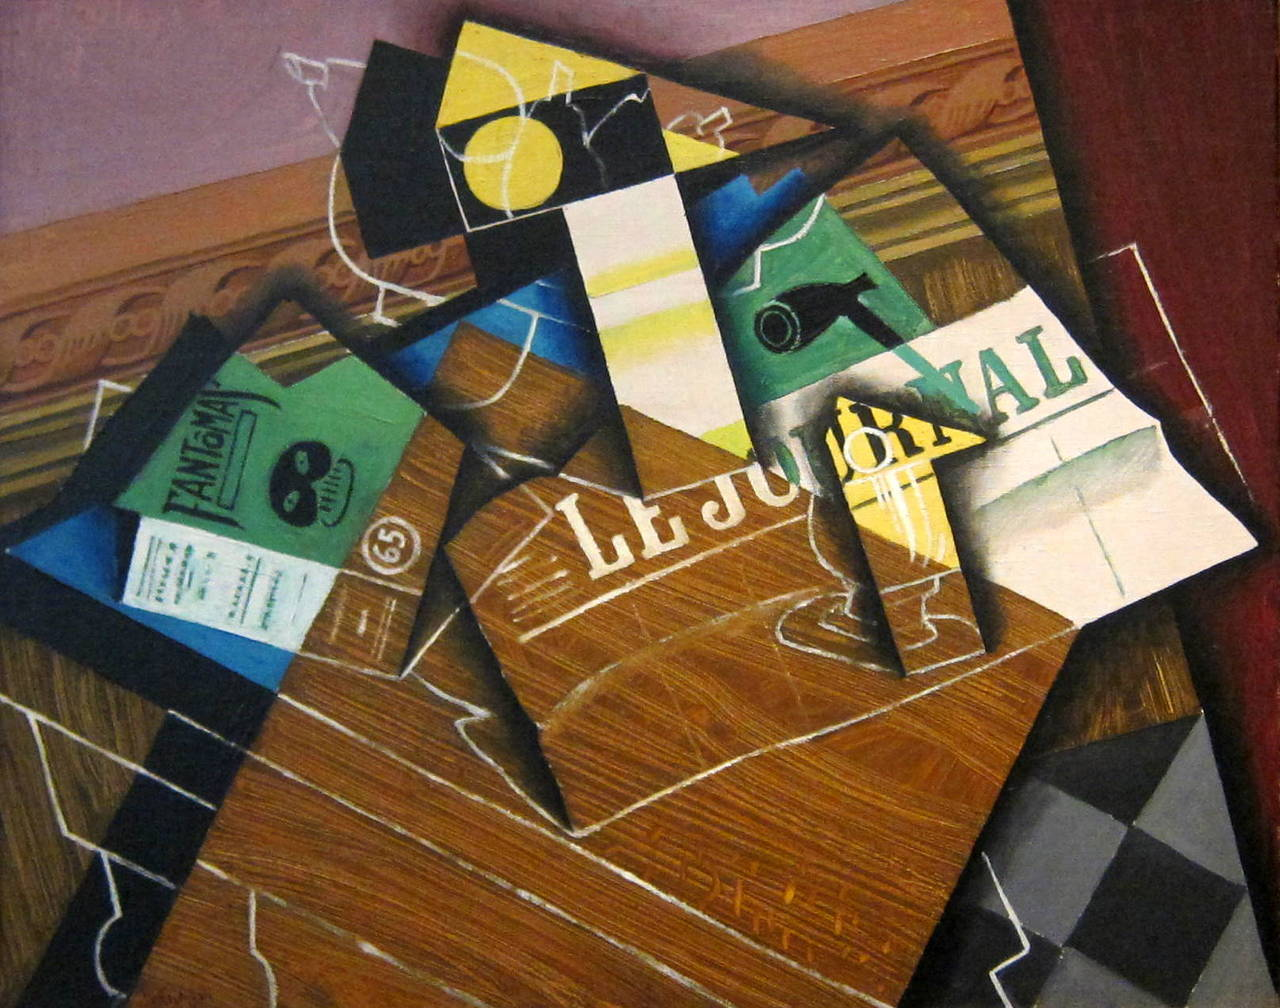 blastedheath:  88pp Juan Gris (Spanish, 1887-1927), Fantômas (Pipe and Newspaper), 1915. Oil on canvas, 59.8 x 73.3 cm. National Gallery of Art, Washington, D.C.